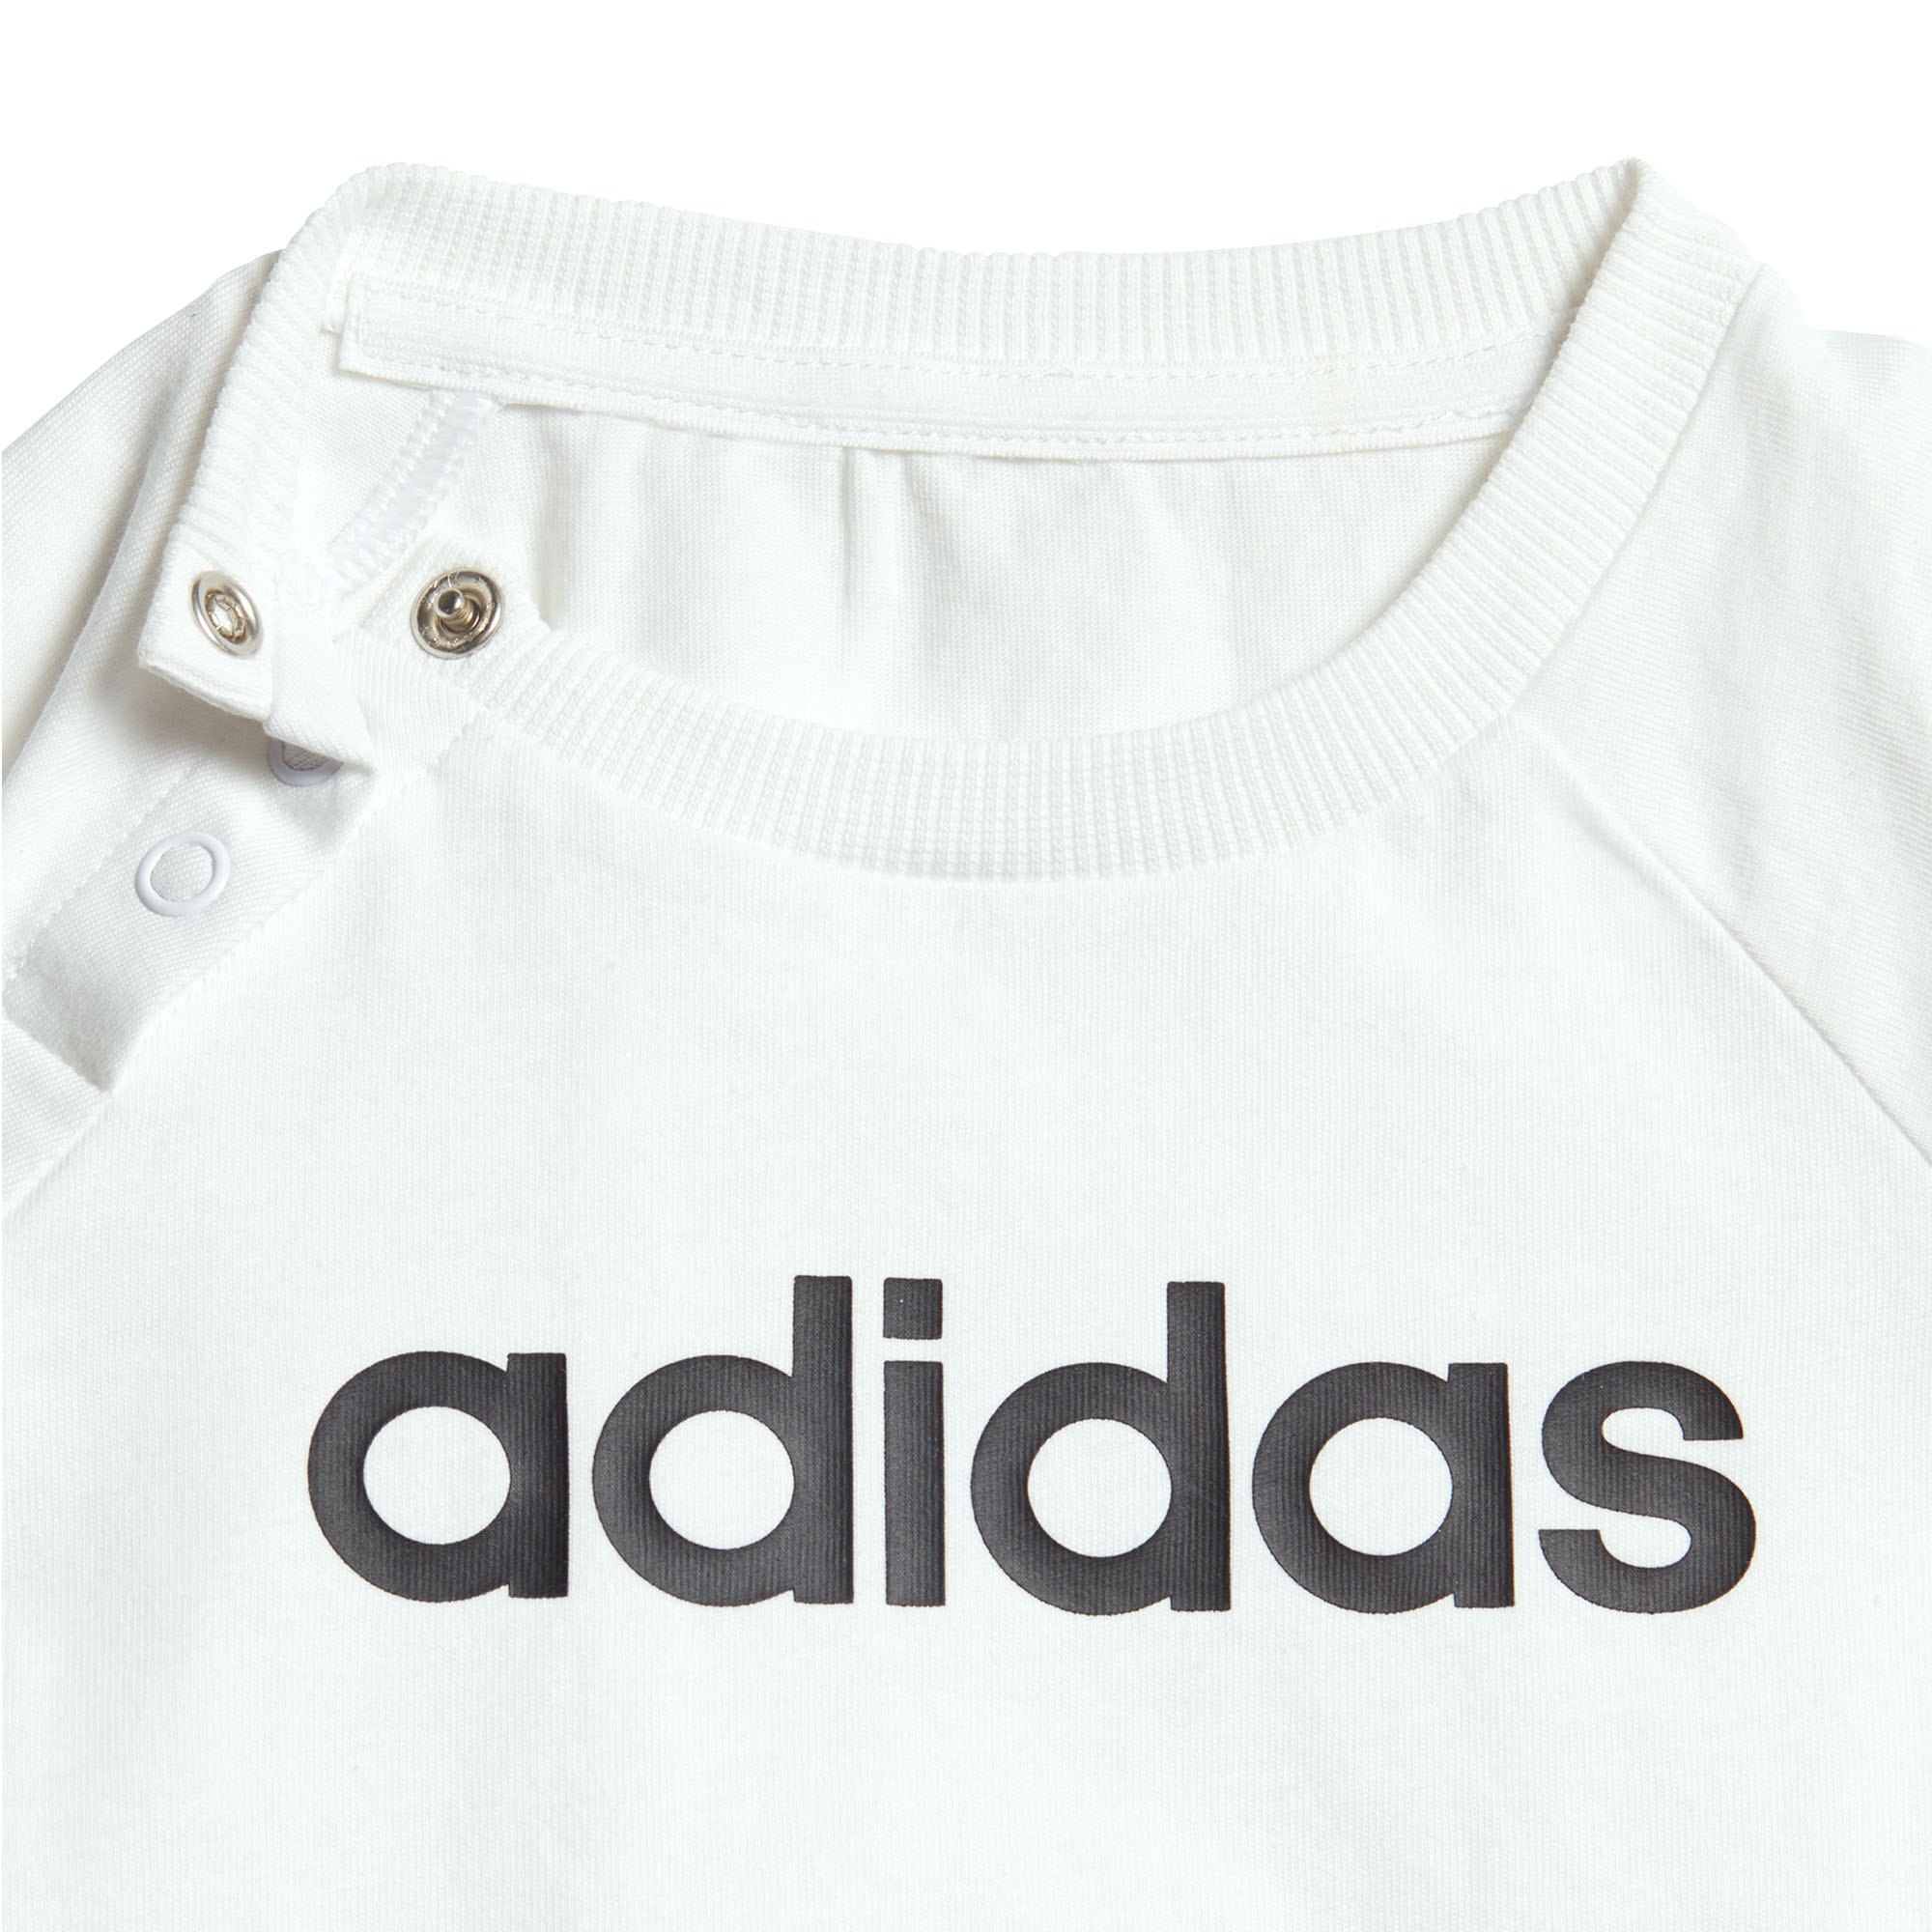 adidas-Linear-Infant-Baby-Toddler-Summer-Outfit-Set-White-Black thumbnail 6